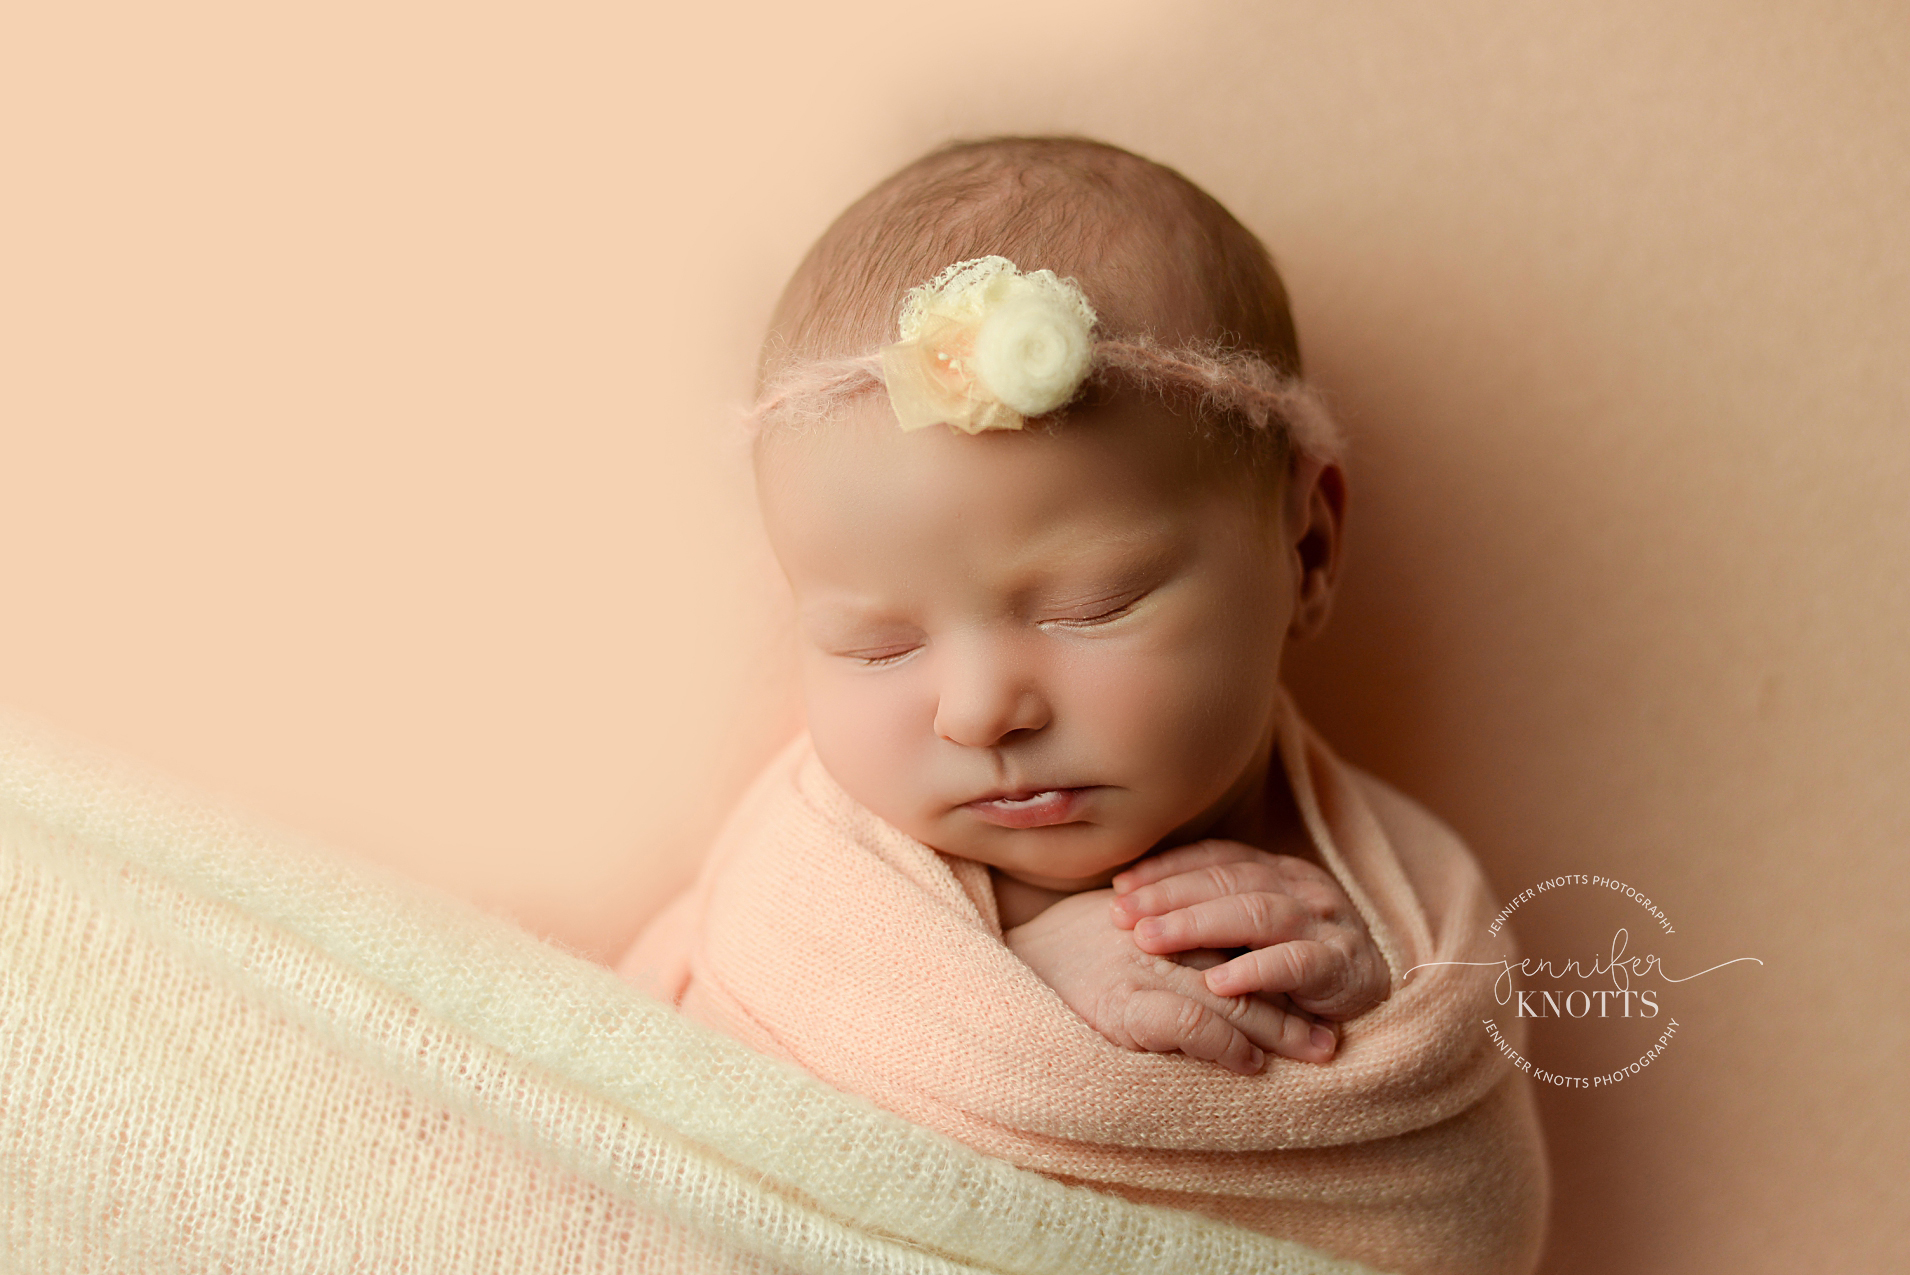 Wilmington newborn photographer captures baby girl wrapped in peach fabric